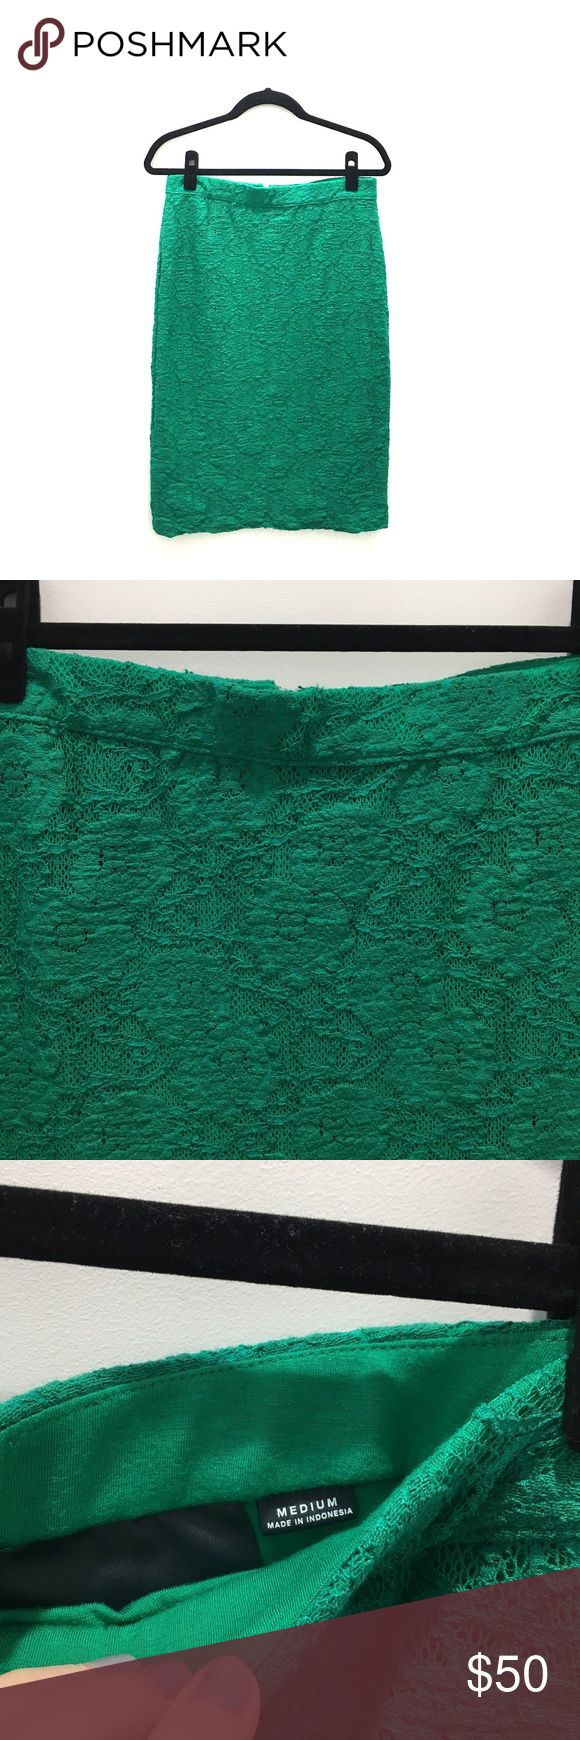 Anthropologie Green Pencil Skirt Size Medium Anthropologie green pencil skirt. The material is a little stretchy but has a defined waist band. The floral texture is beautiful. Size Medium. Anthropologie Skirts Pencil